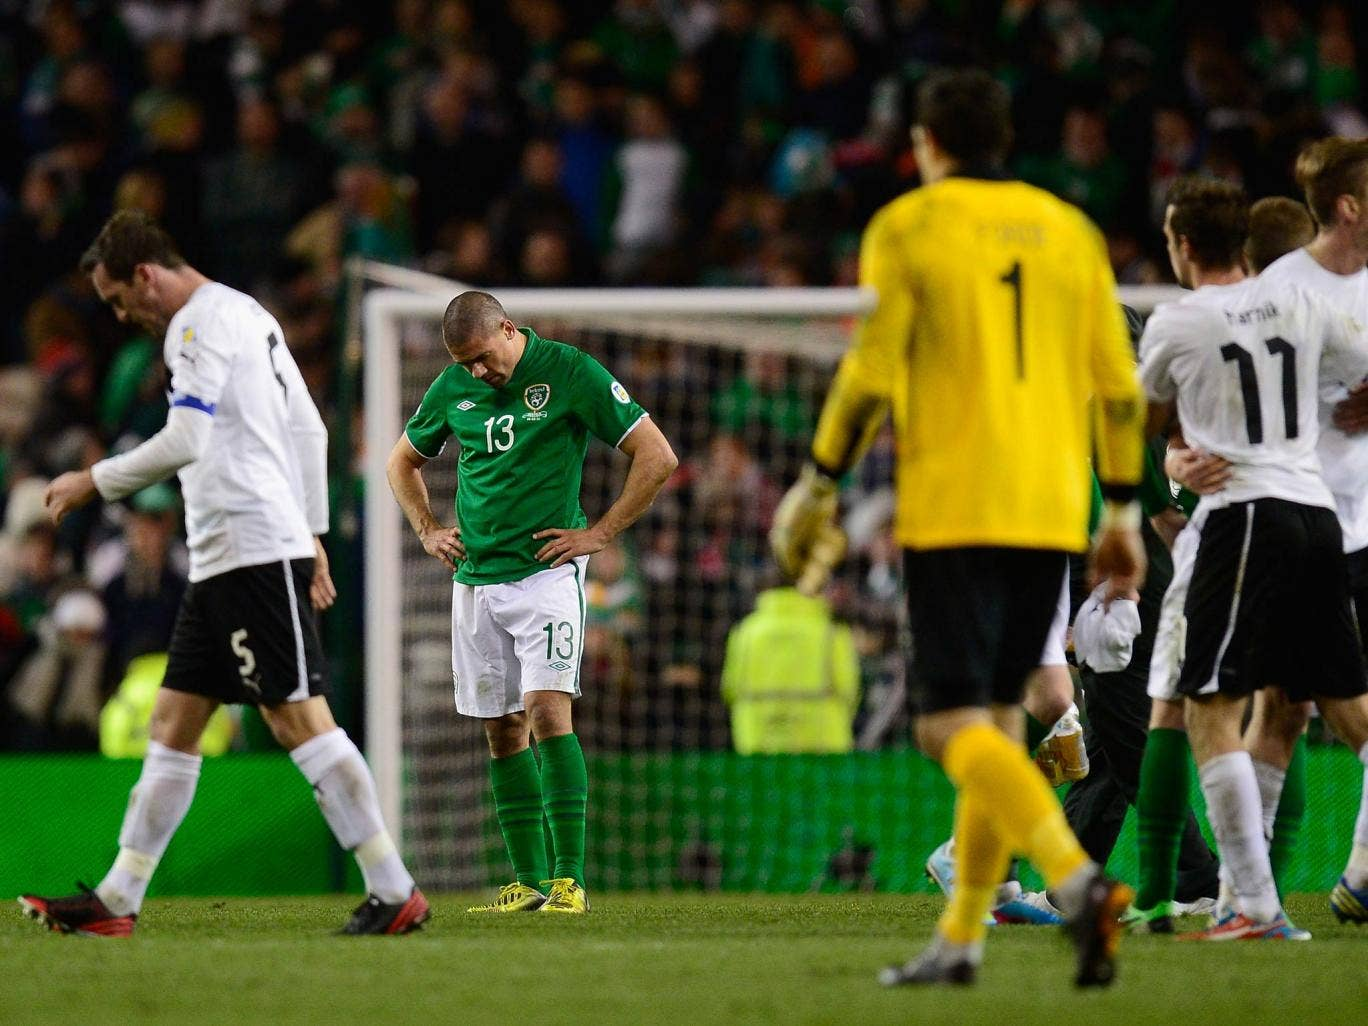 Ireland player Jonathan Walters looks dejected at the end of Ireland's 2-2 draw with Austria